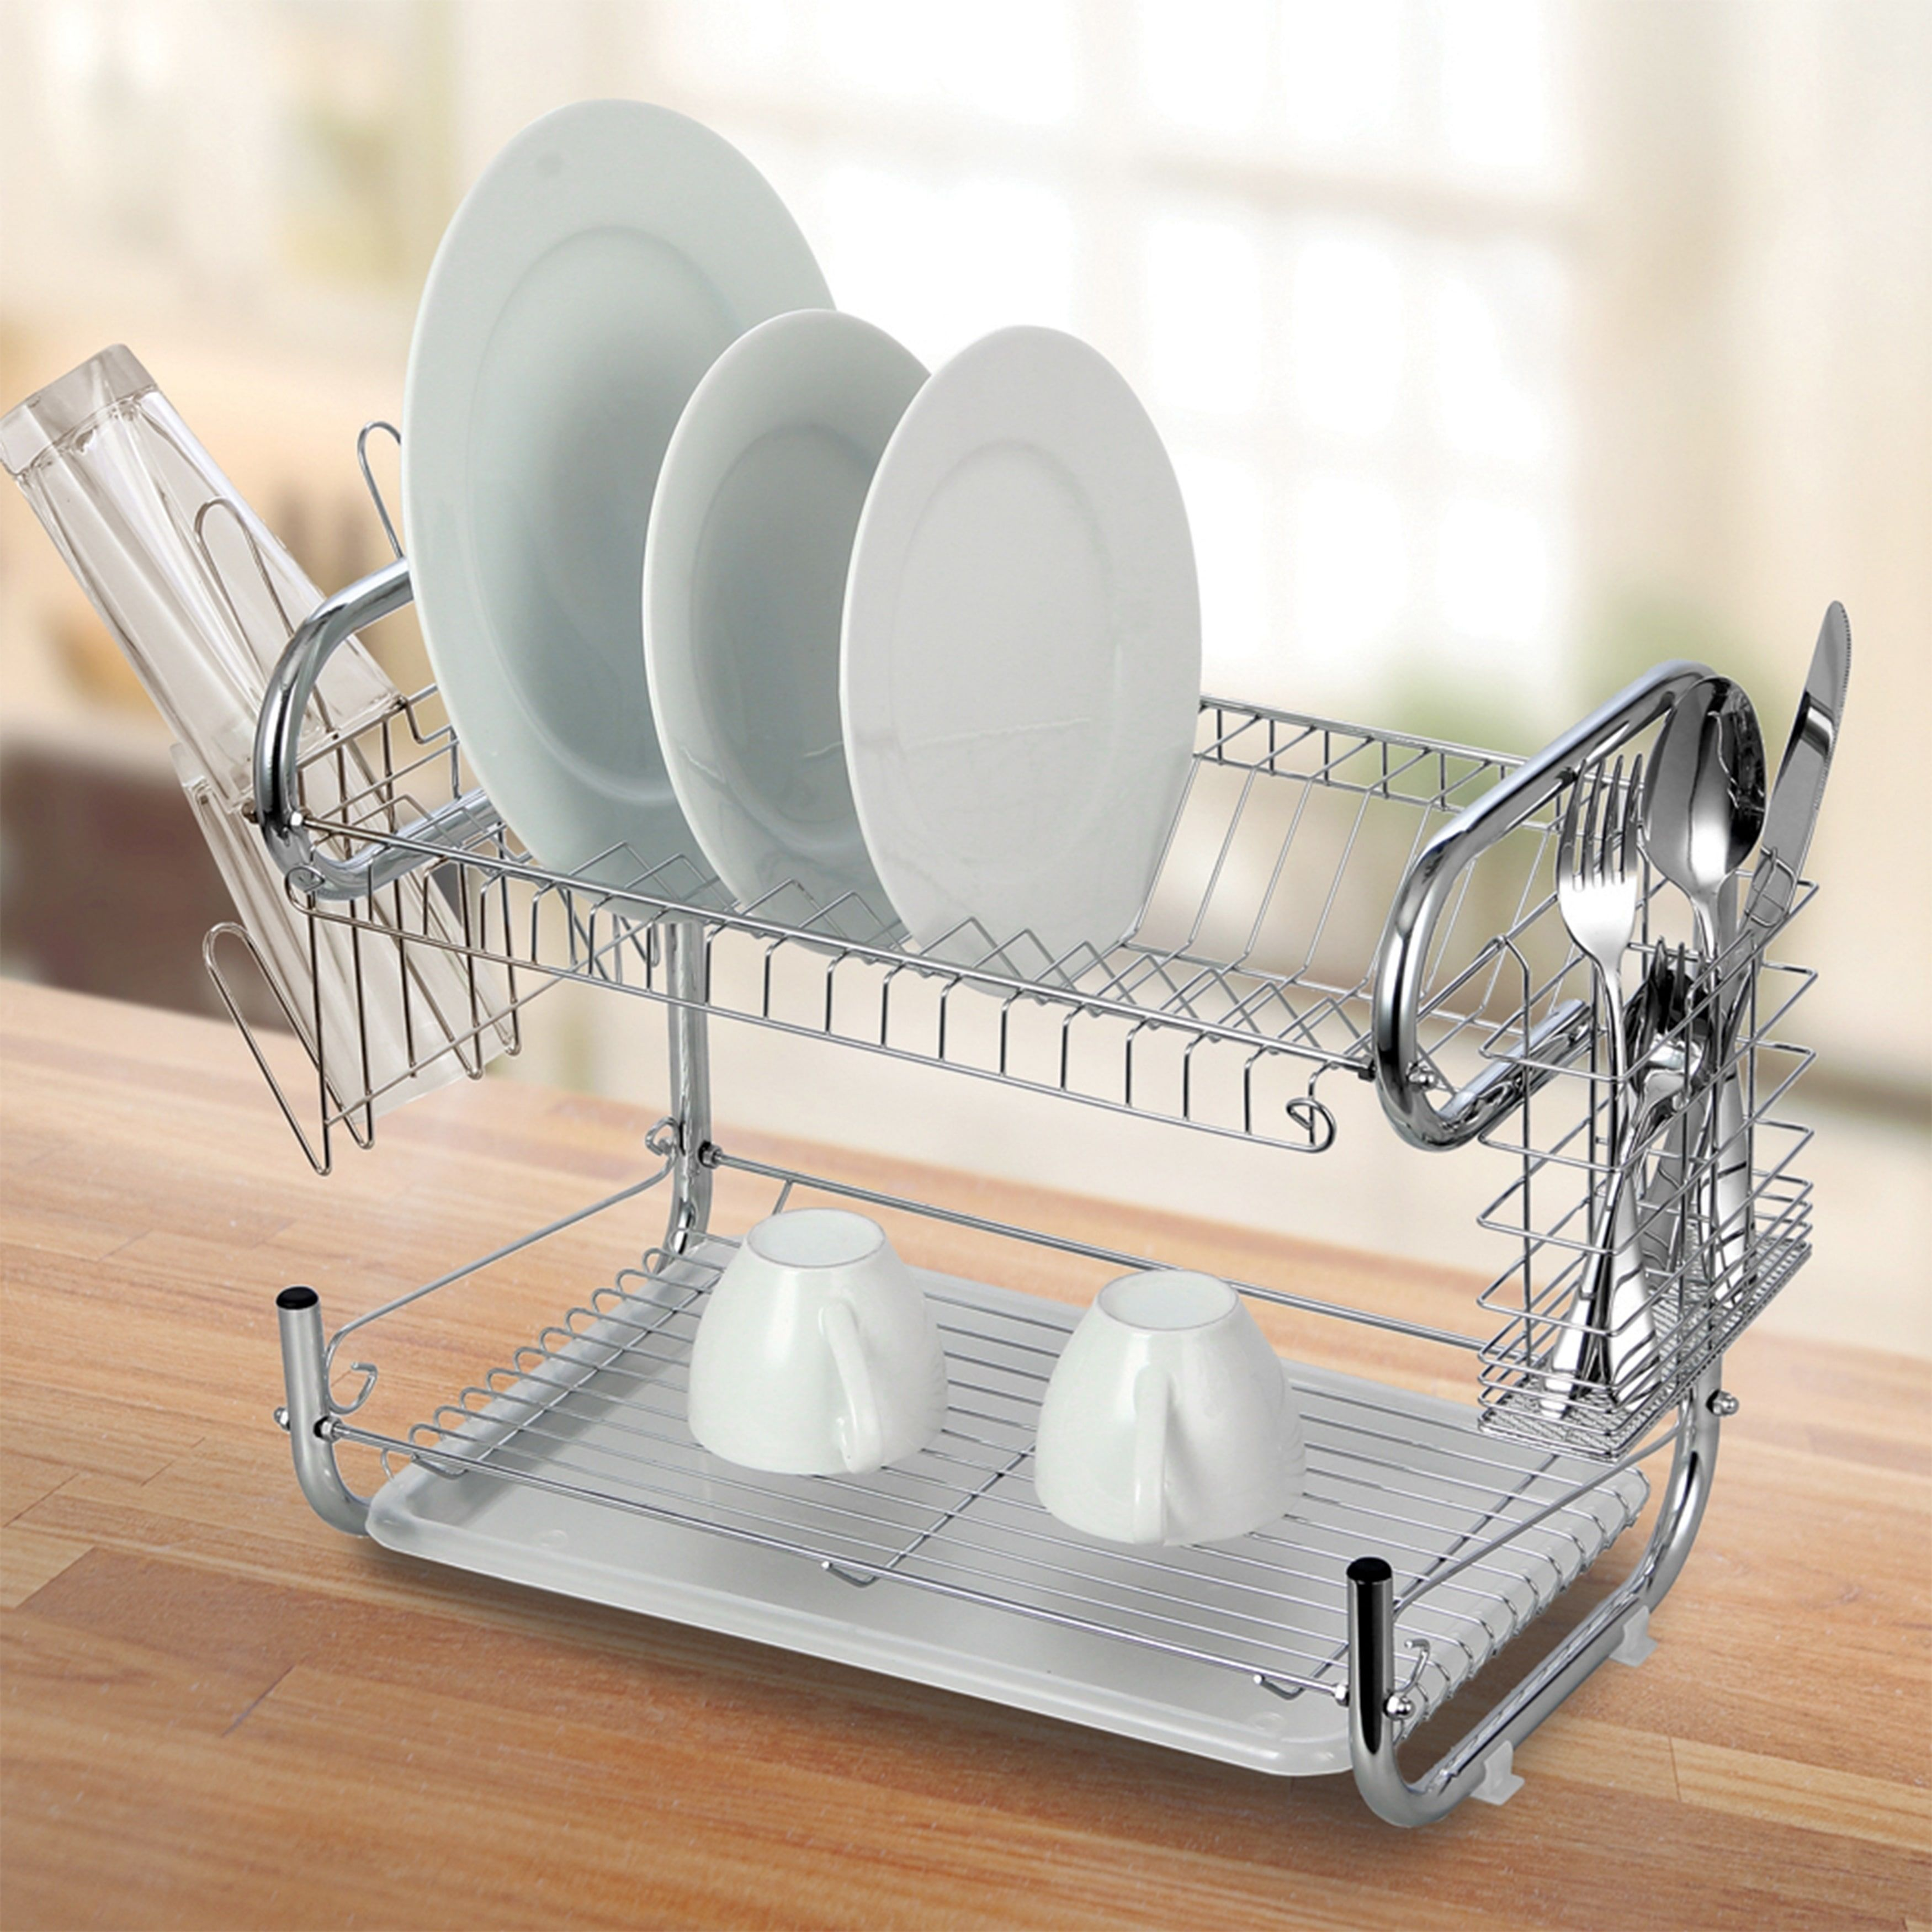 Modern Kitchen Chrome Plated 2 Tier Dish Drying Rack And